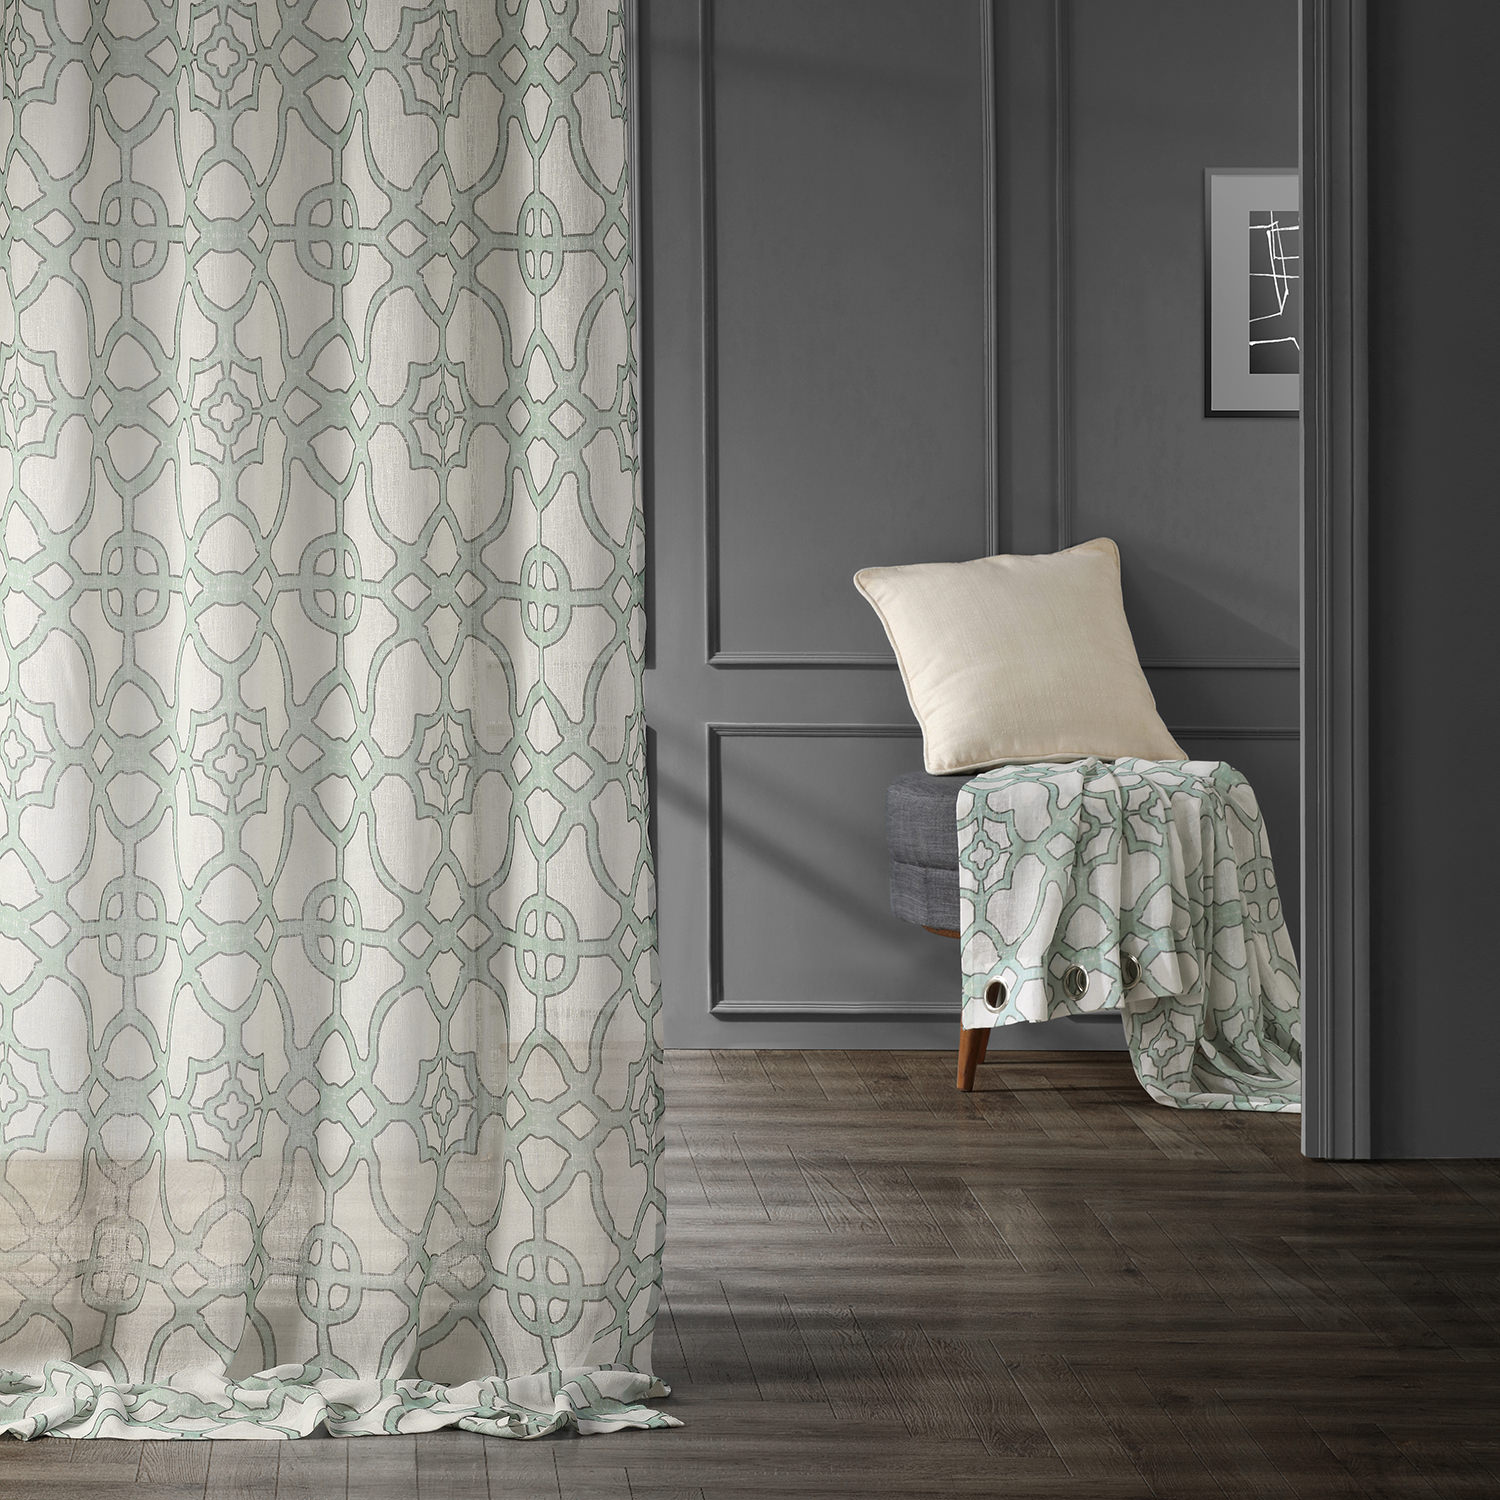 SeaGlass Blue Grommet Printed Faux Linen Sheer Curtain